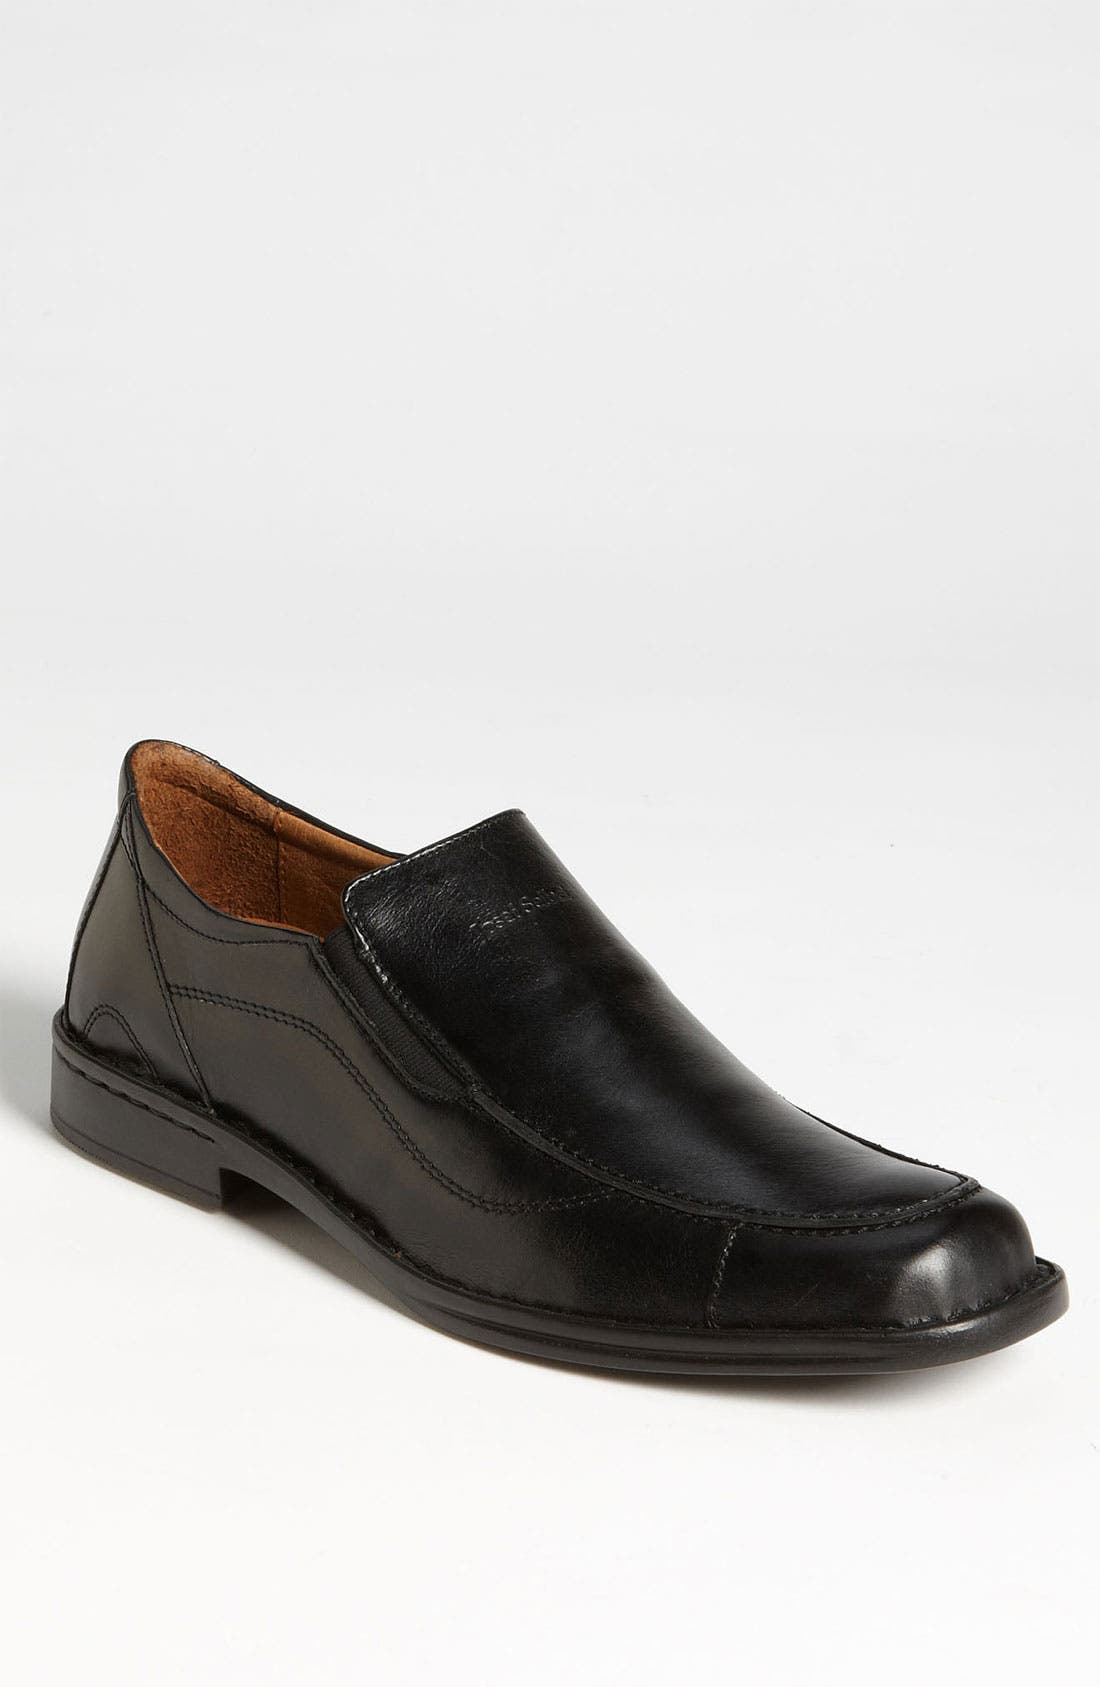 Alternate Image 1 Selected - Josef Seibel 'Douglas' Loafer